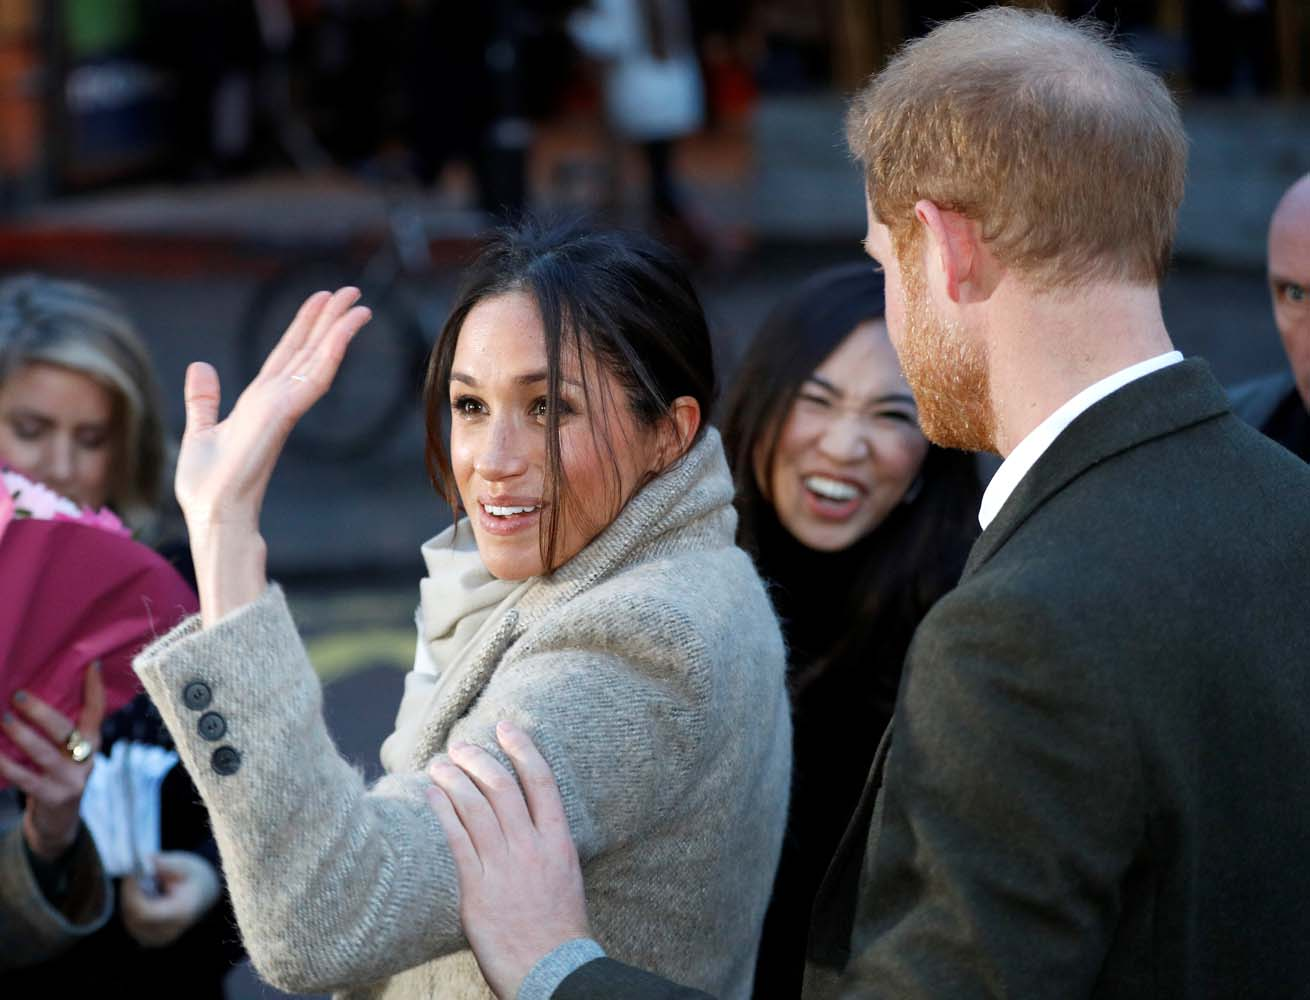 Britain's Prince Harry and his fiancee Meghan Markle greet well wishers as they leave after visiting radio station Reprezent FM, in Brixton, London January 9, 2018. REUTERS/Peter Nicholls